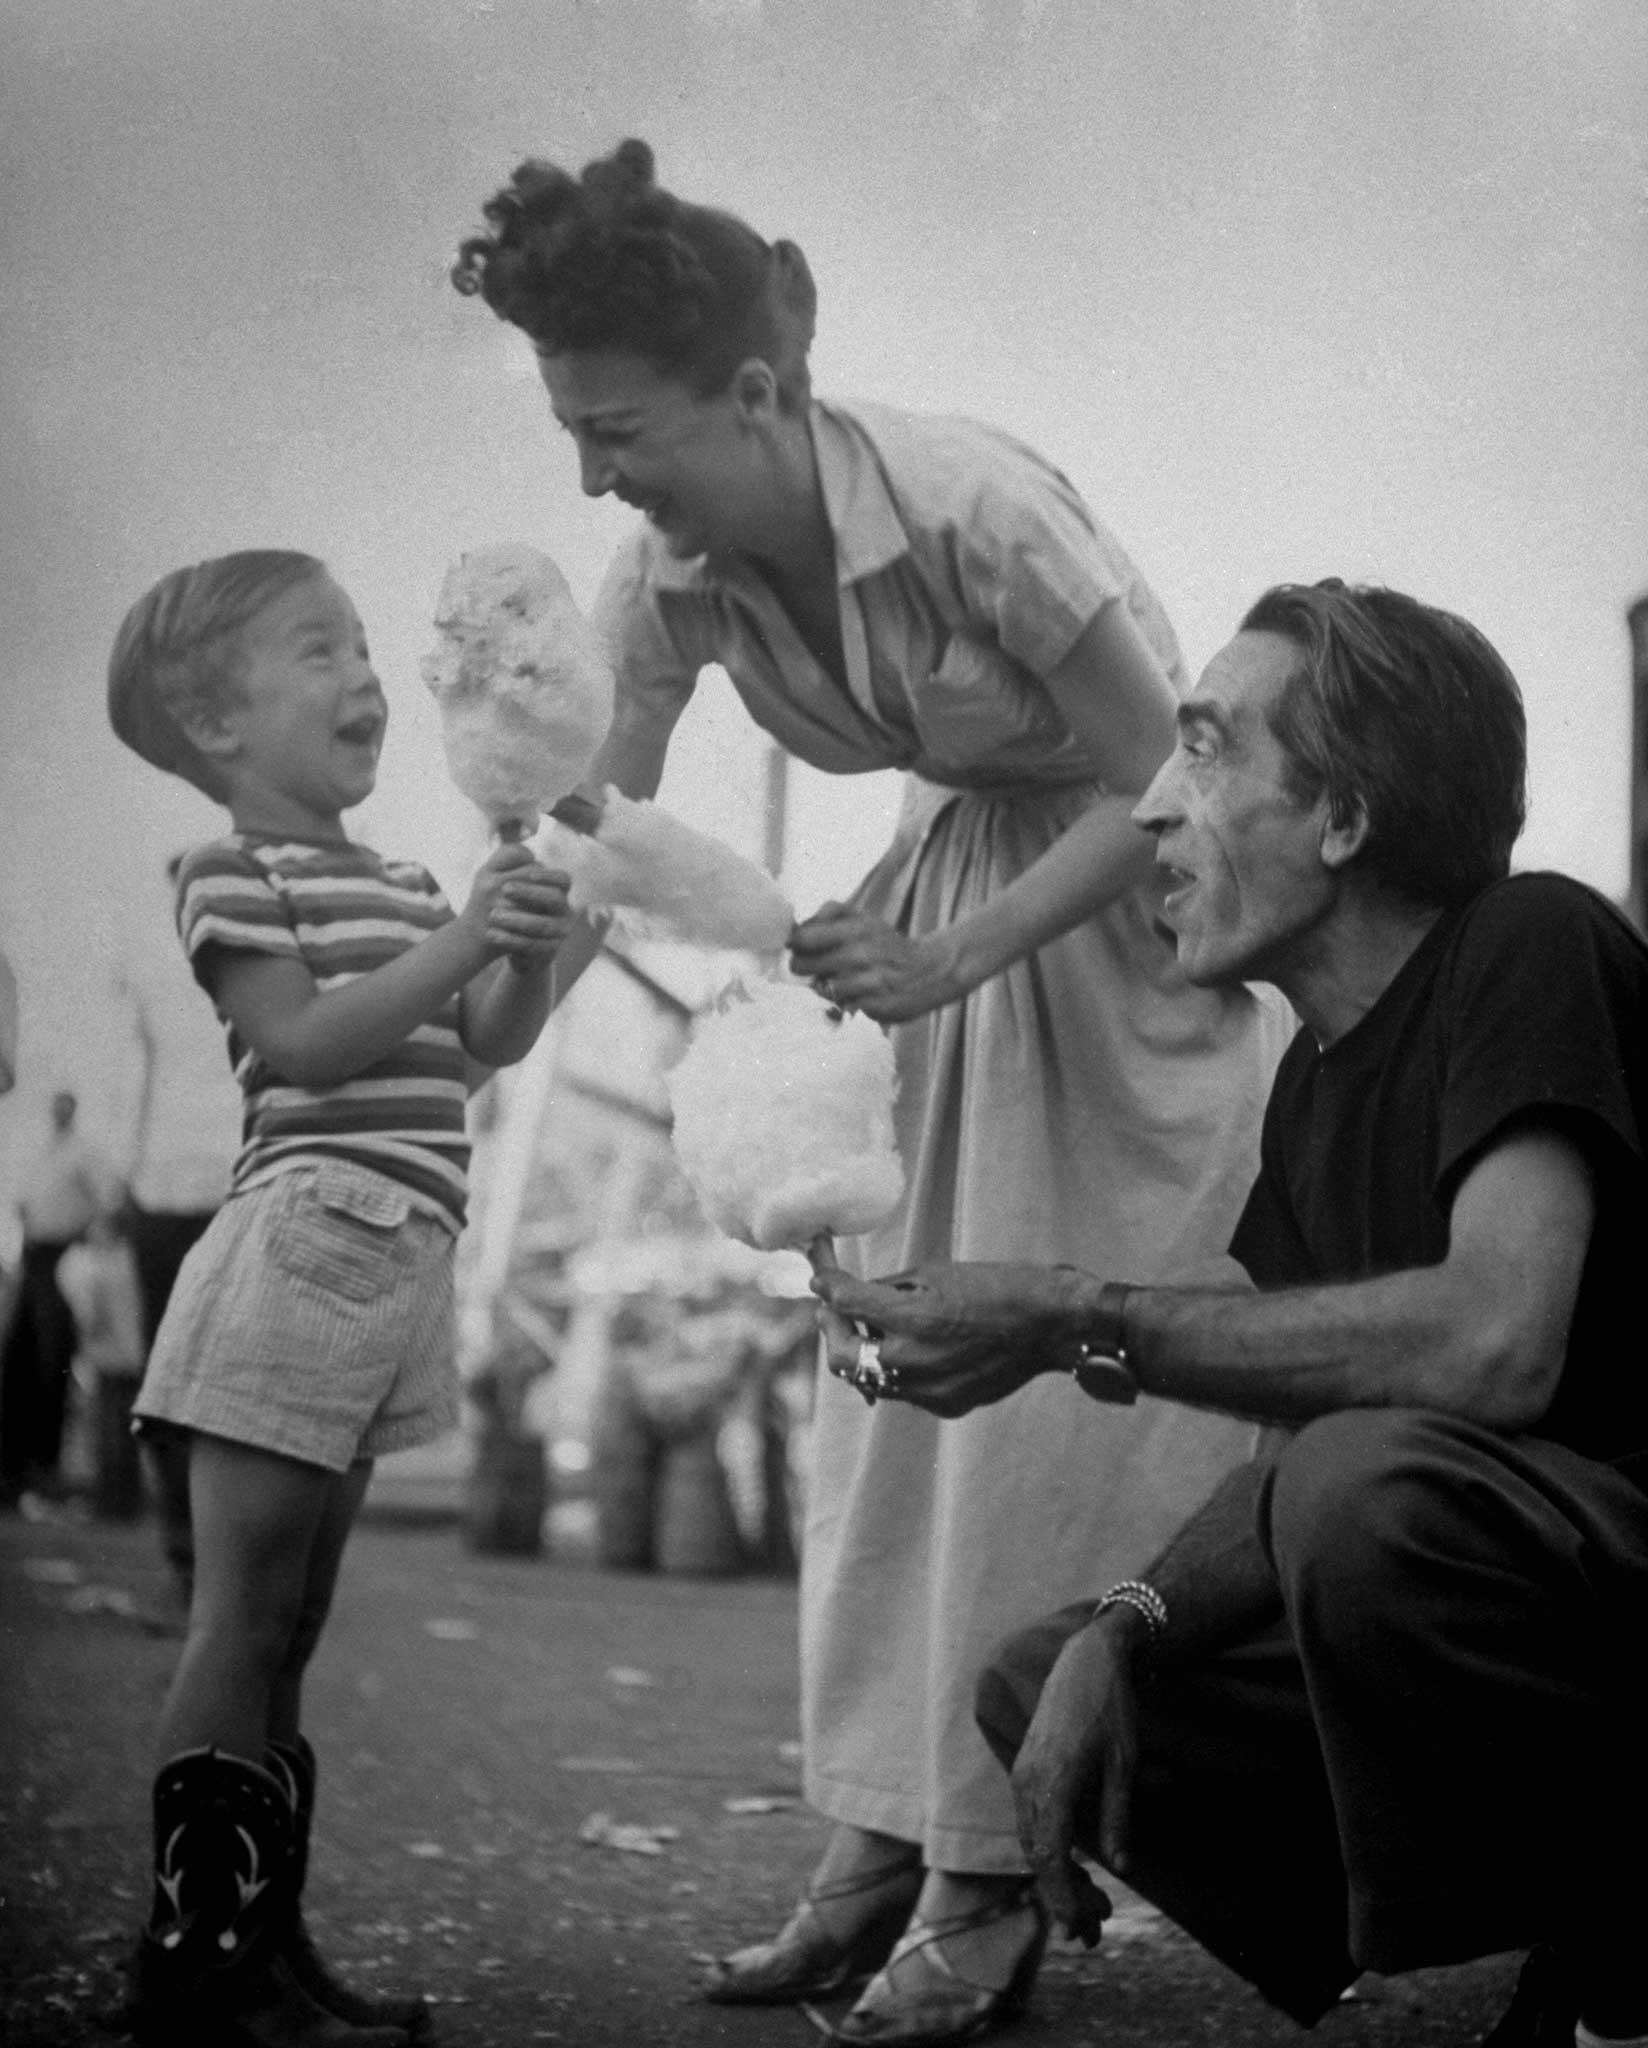 <b>Not published in LIFE.</b> Gypsy Rose Lee gives her son, Erik, cotton candy while her husband Julio De Diego watches, 1949.